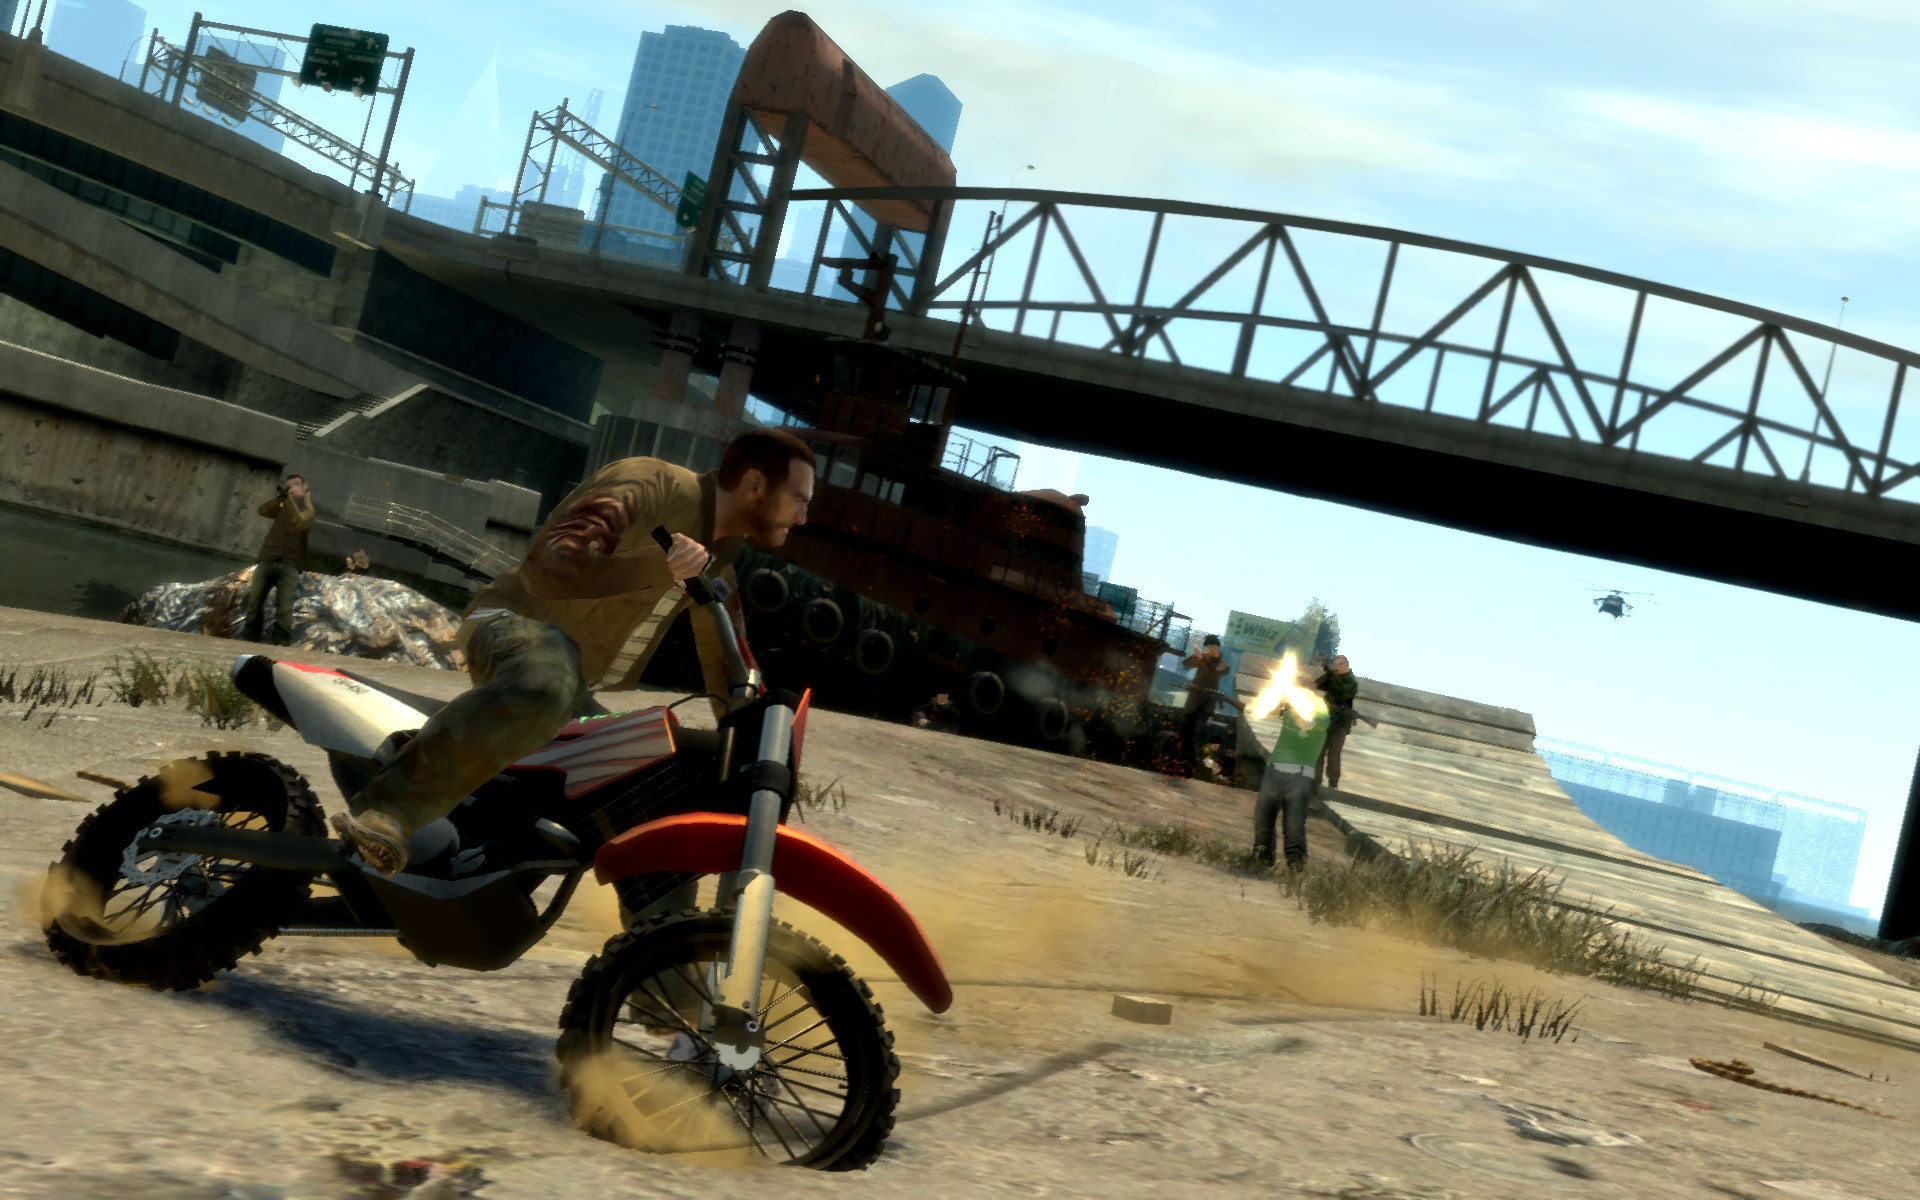 grand theft auto iv cheats helicopter with Pc Screenshots on Watch also Gta V 5 Tudo O Que Precisao De Saber Ps4xbox One E Pc together with Gta Episodes From Liberty City Xbox 360 additionally Wallpaper moreover Gta 5 Cheats And Easter Eggs.